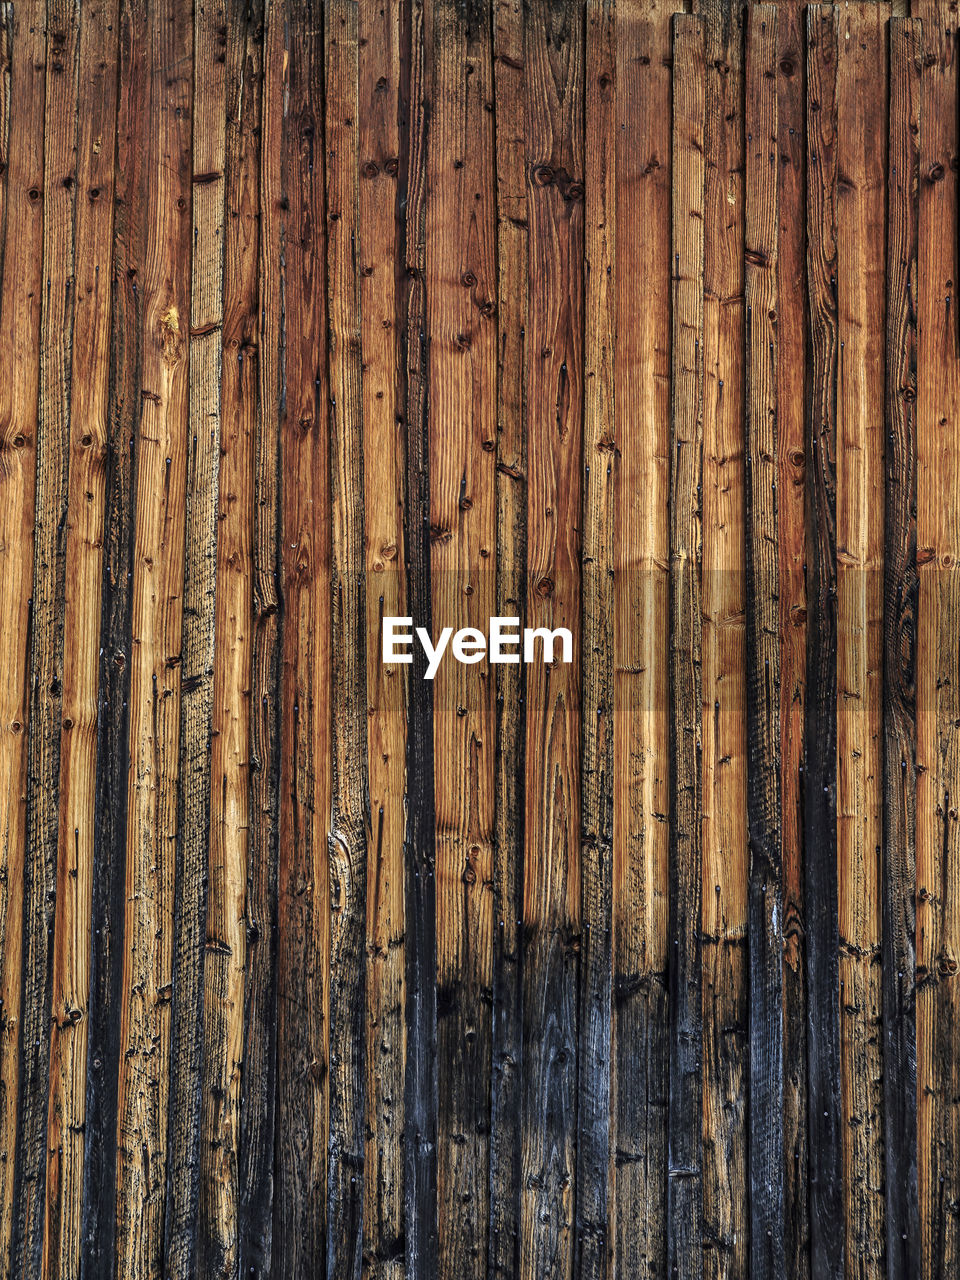 wood - material, textured, backgrounds, full frame, pattern, brown, no people, close-up, wood, wood grain, plank, rough, tree, timber, old, day, hardwood, weathered, material, lumber industry, textured effect